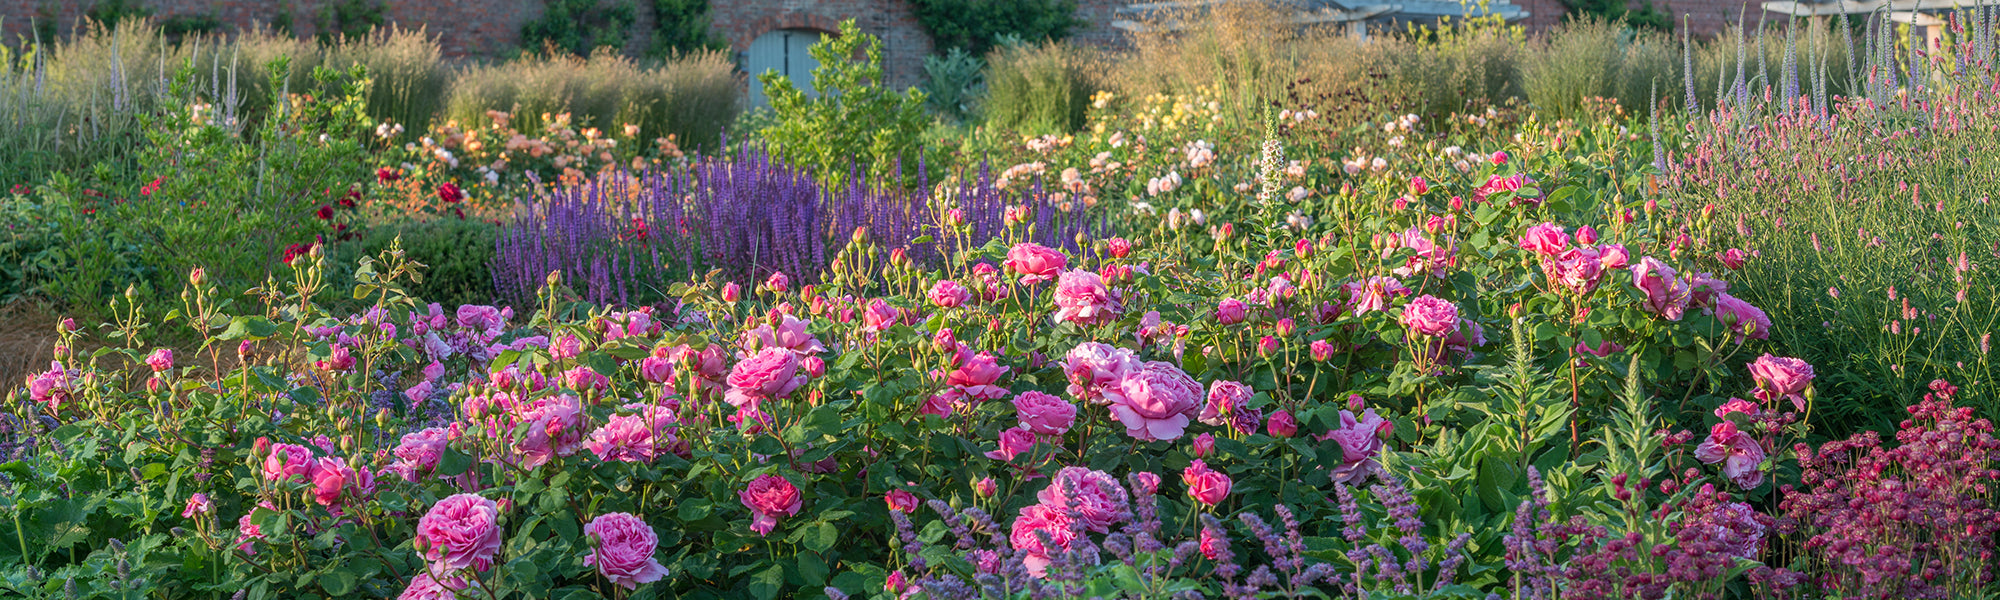 Pink rose blooms in a mixed border in a country garden - Princess Alexandra of Kent